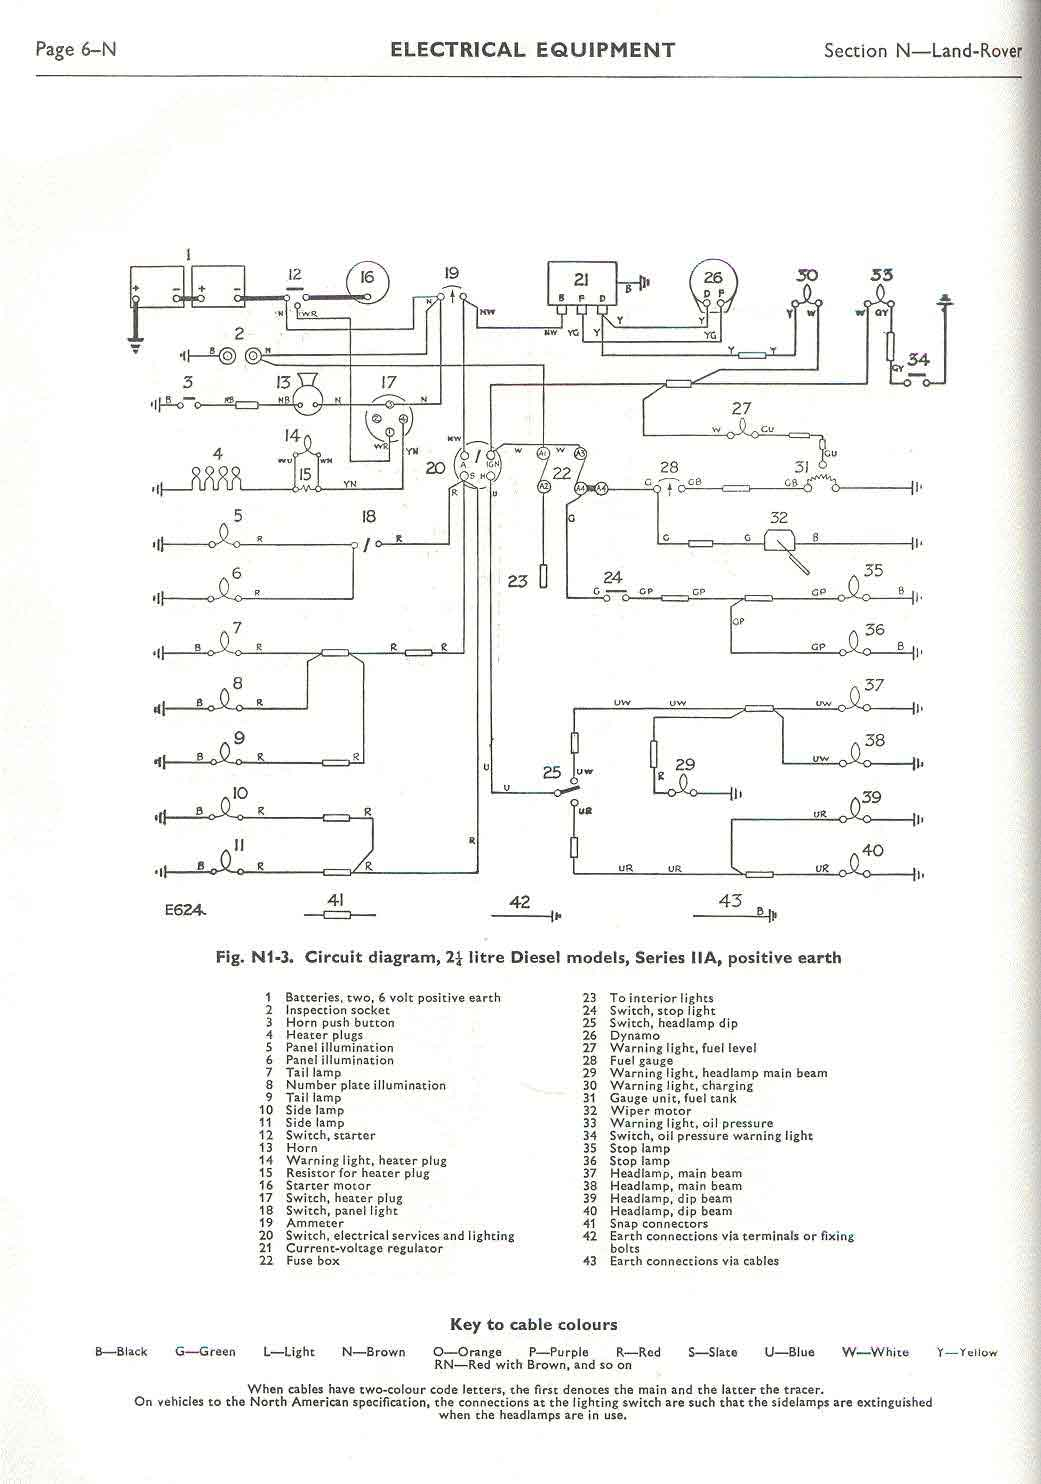 Land Rover Wiring Diagram Series List Of Schematic Circuit Wire And Technical Data In A Pdf File The Electrical Faq Repair Maintenance Rh Lrfaq Org 3